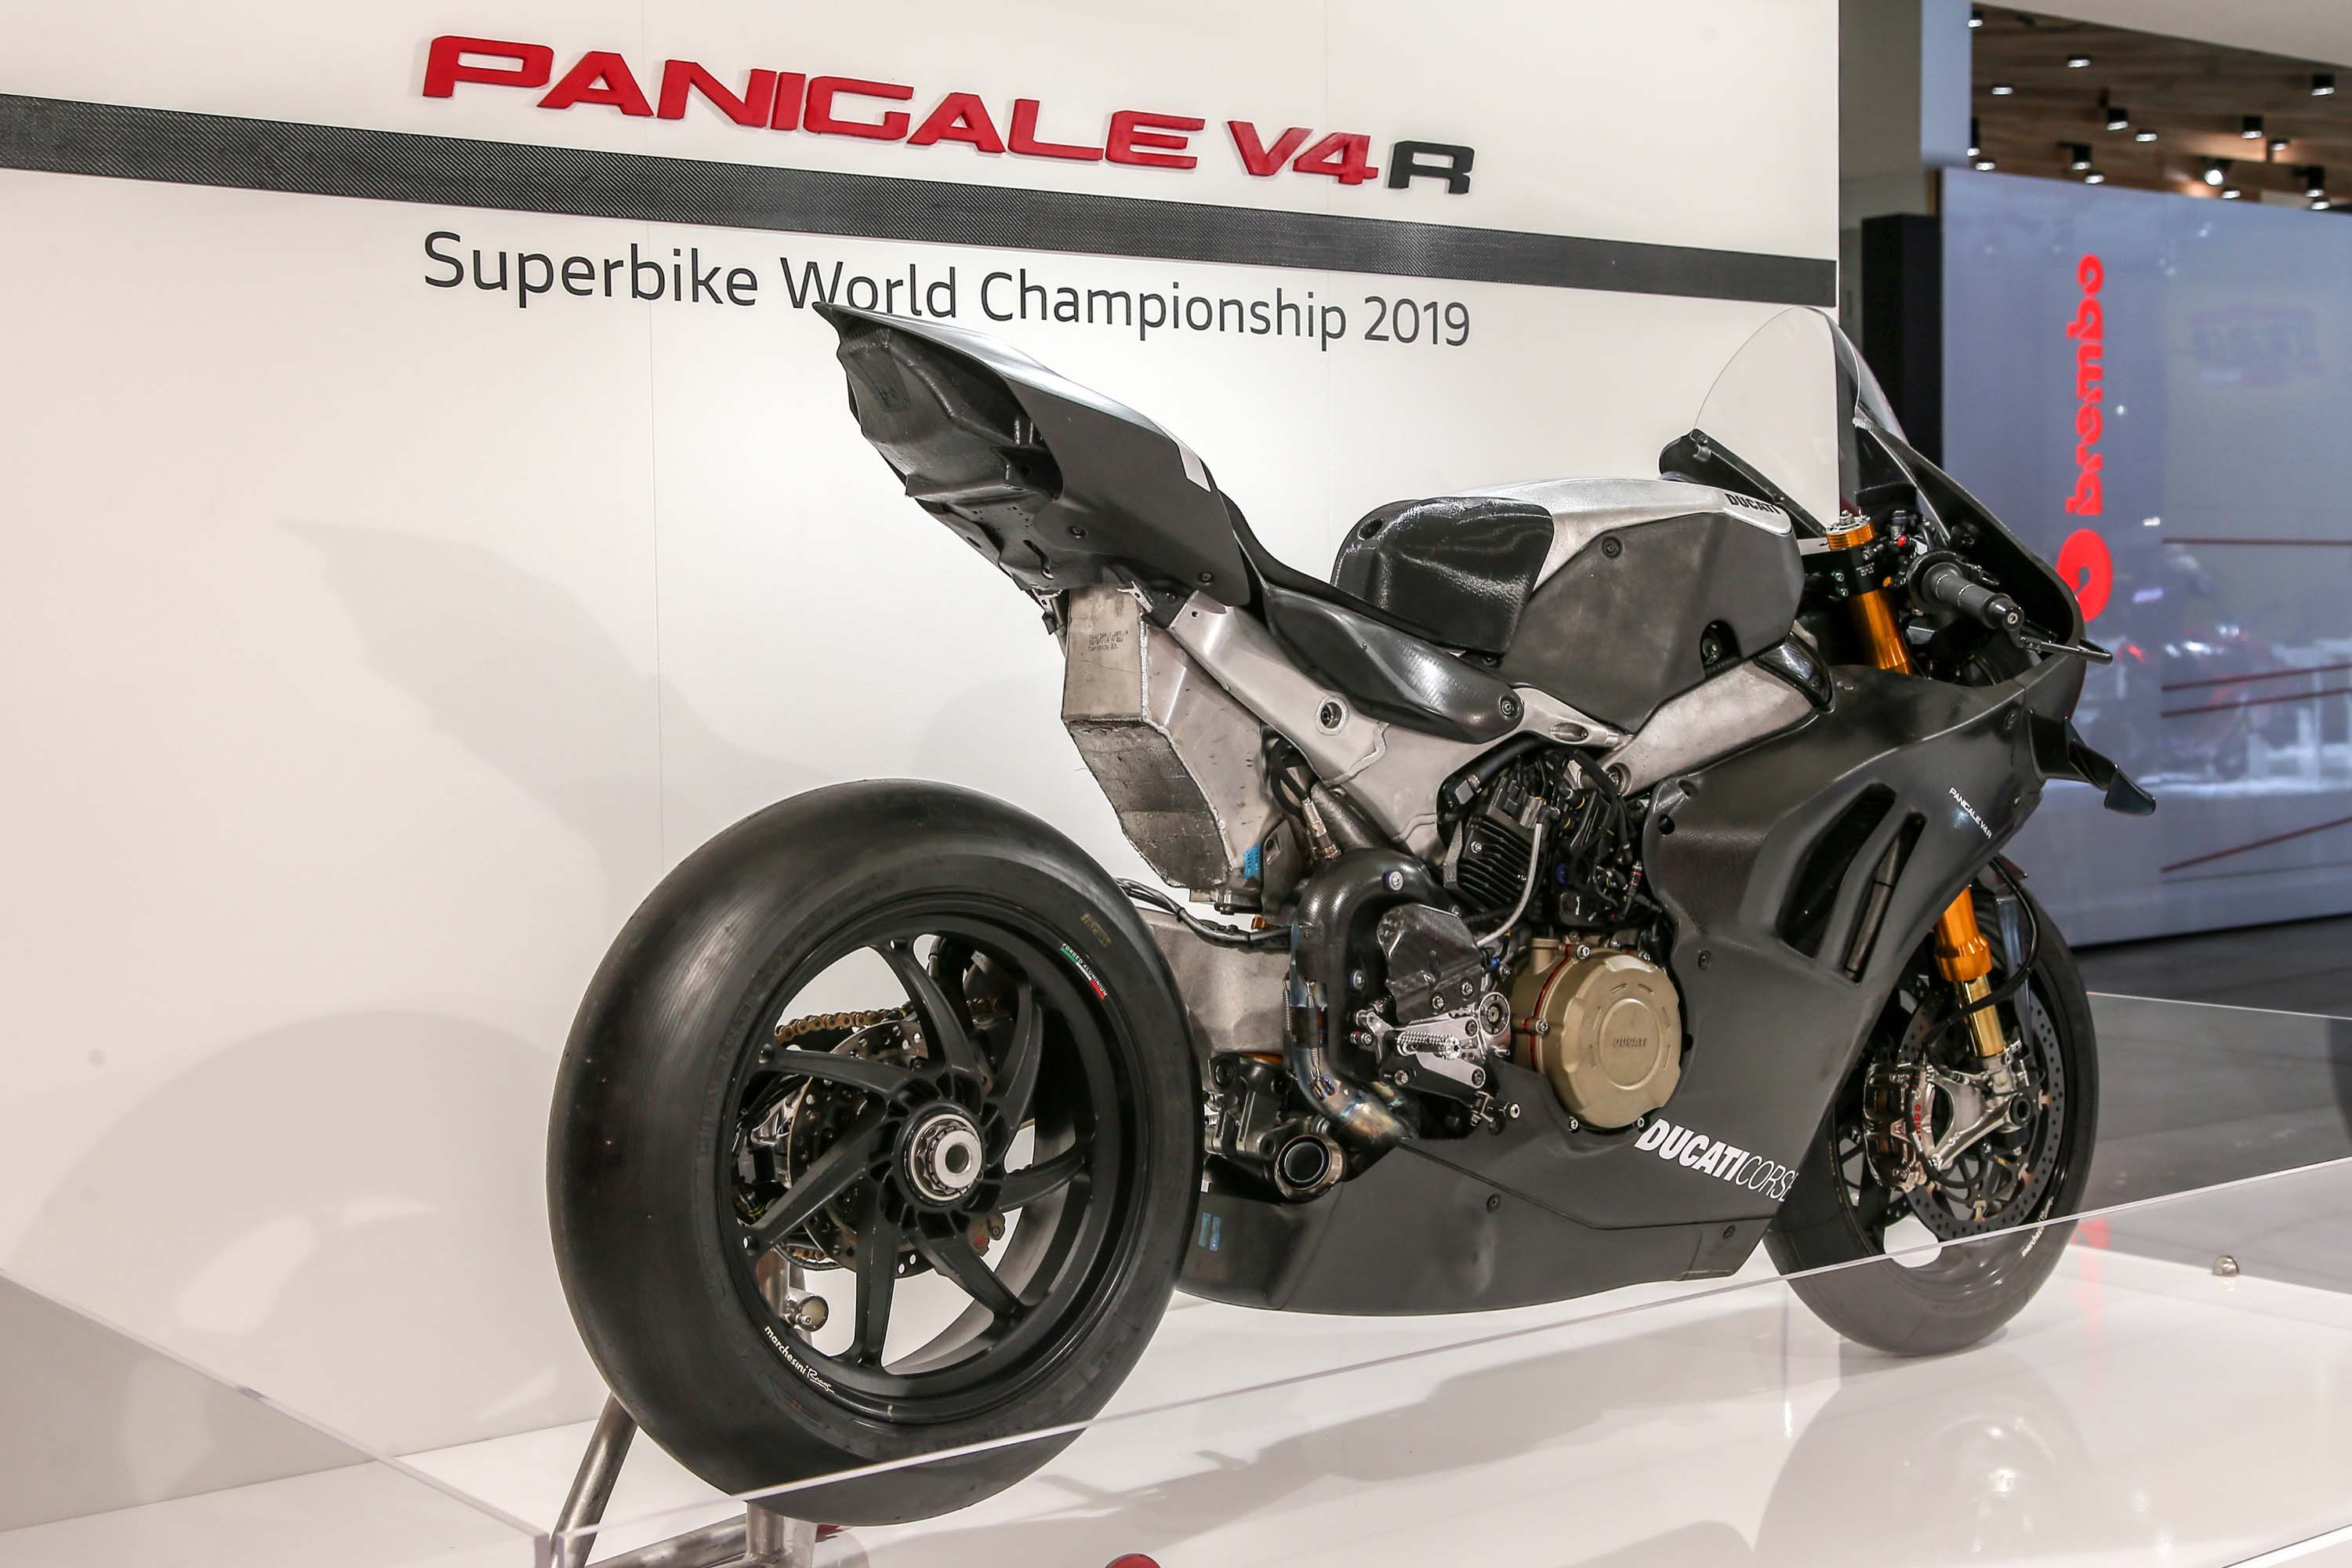 Ducati Panigale V4 RS19 Is Ready for Racing Duty - Asphalt